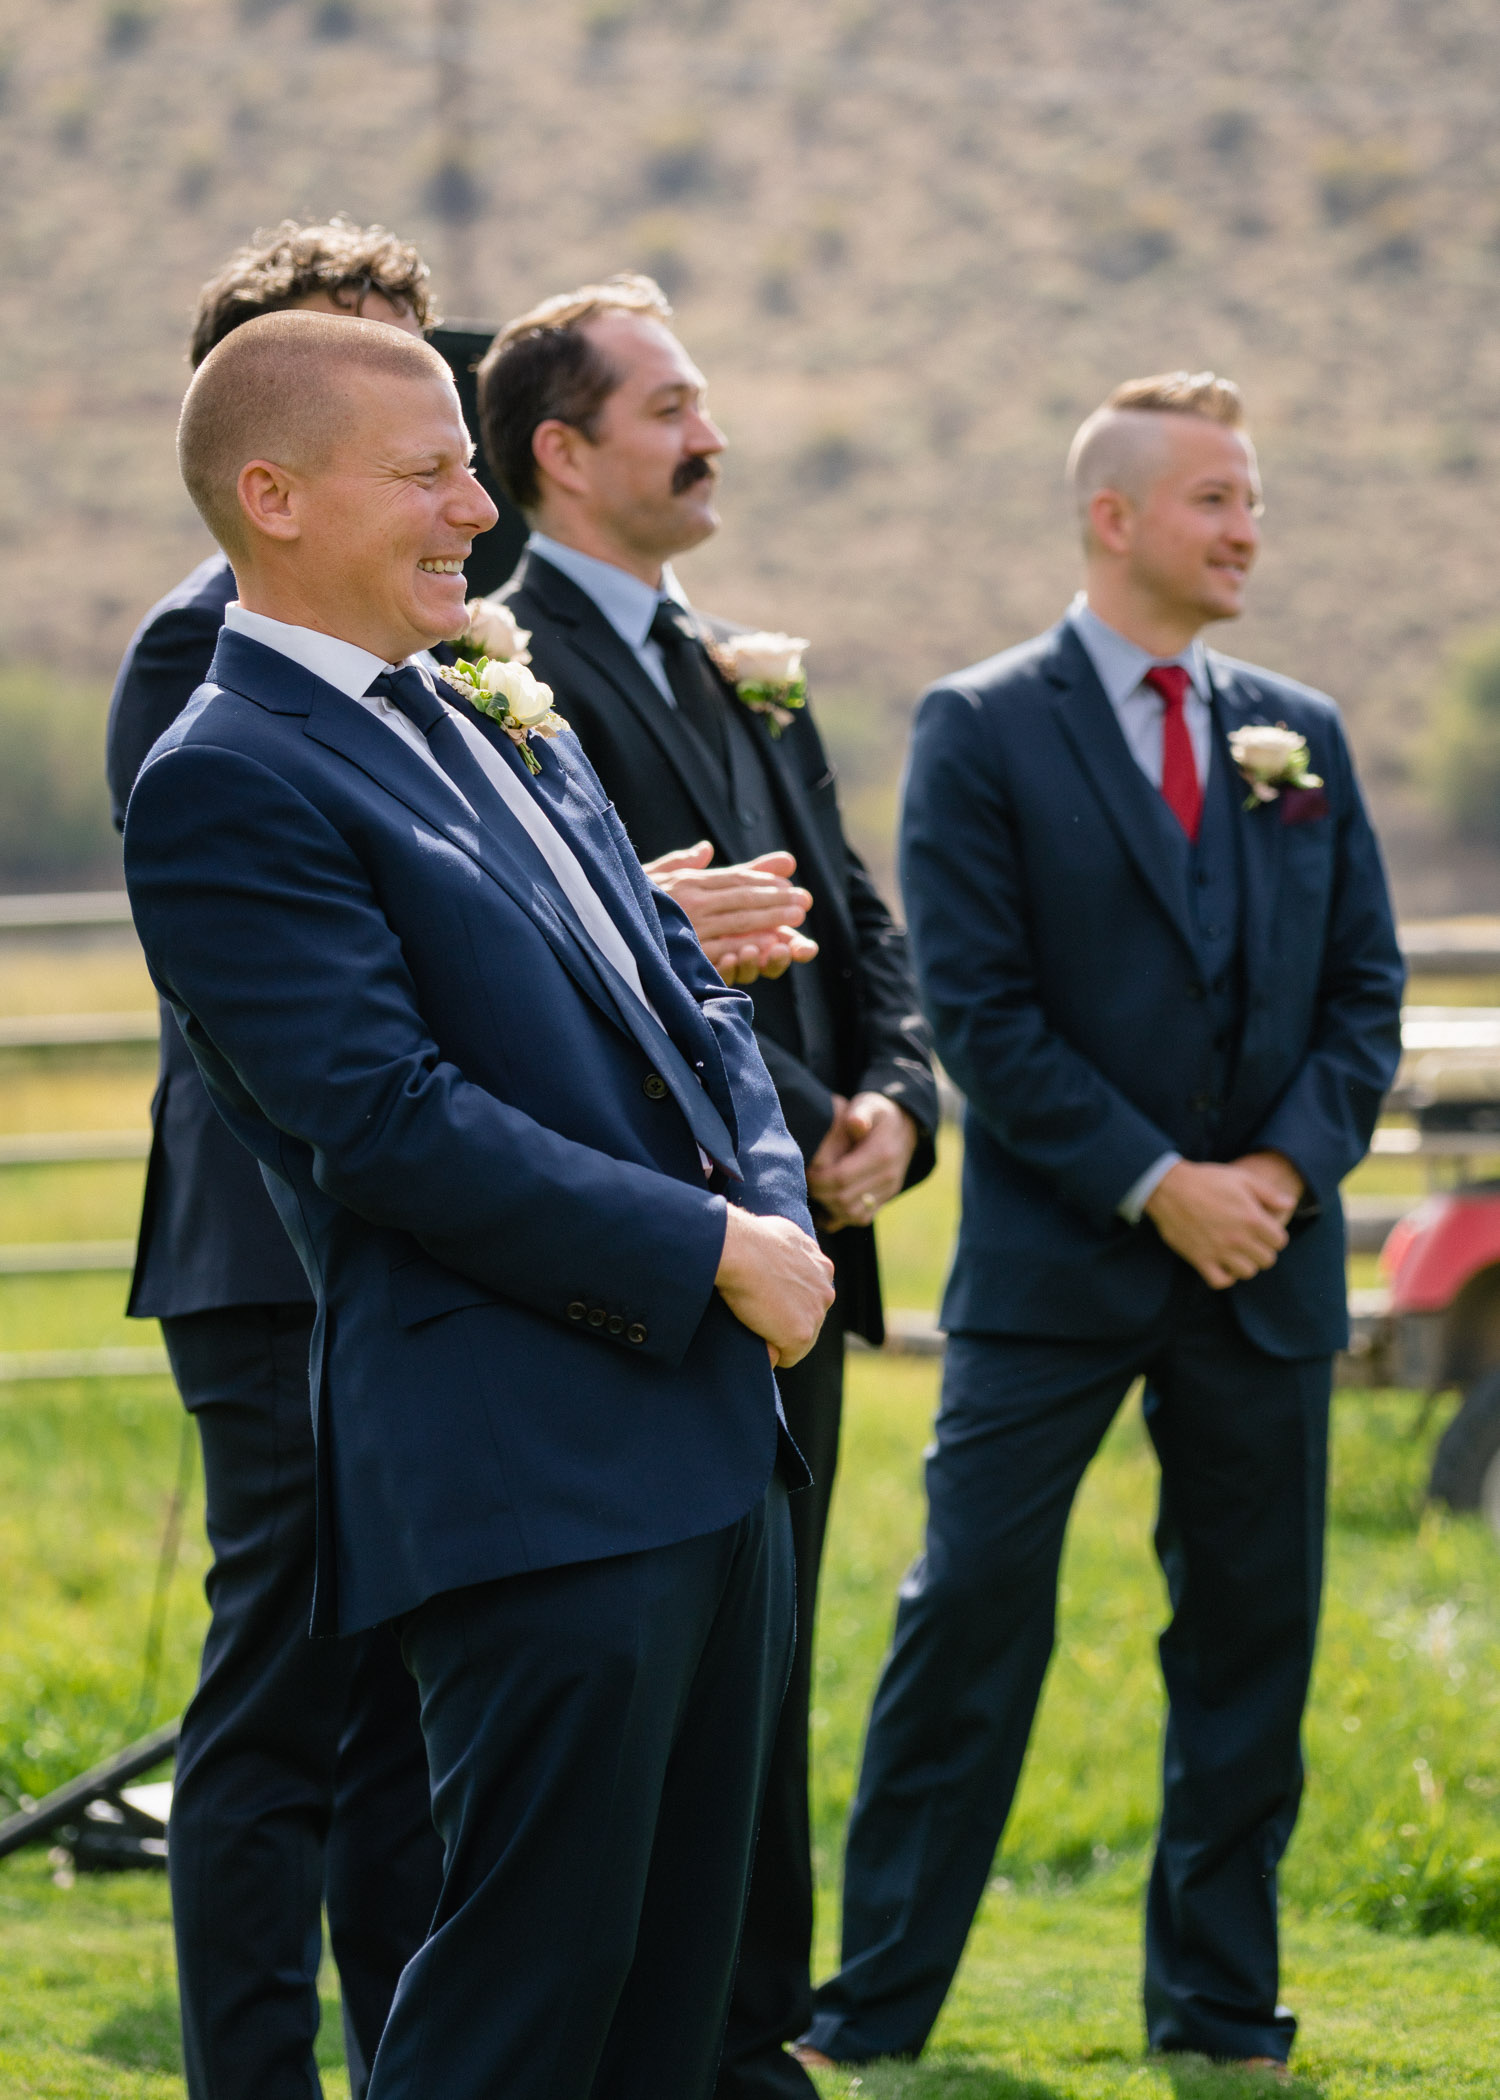 groom and groomsmen excited outdoor wedding